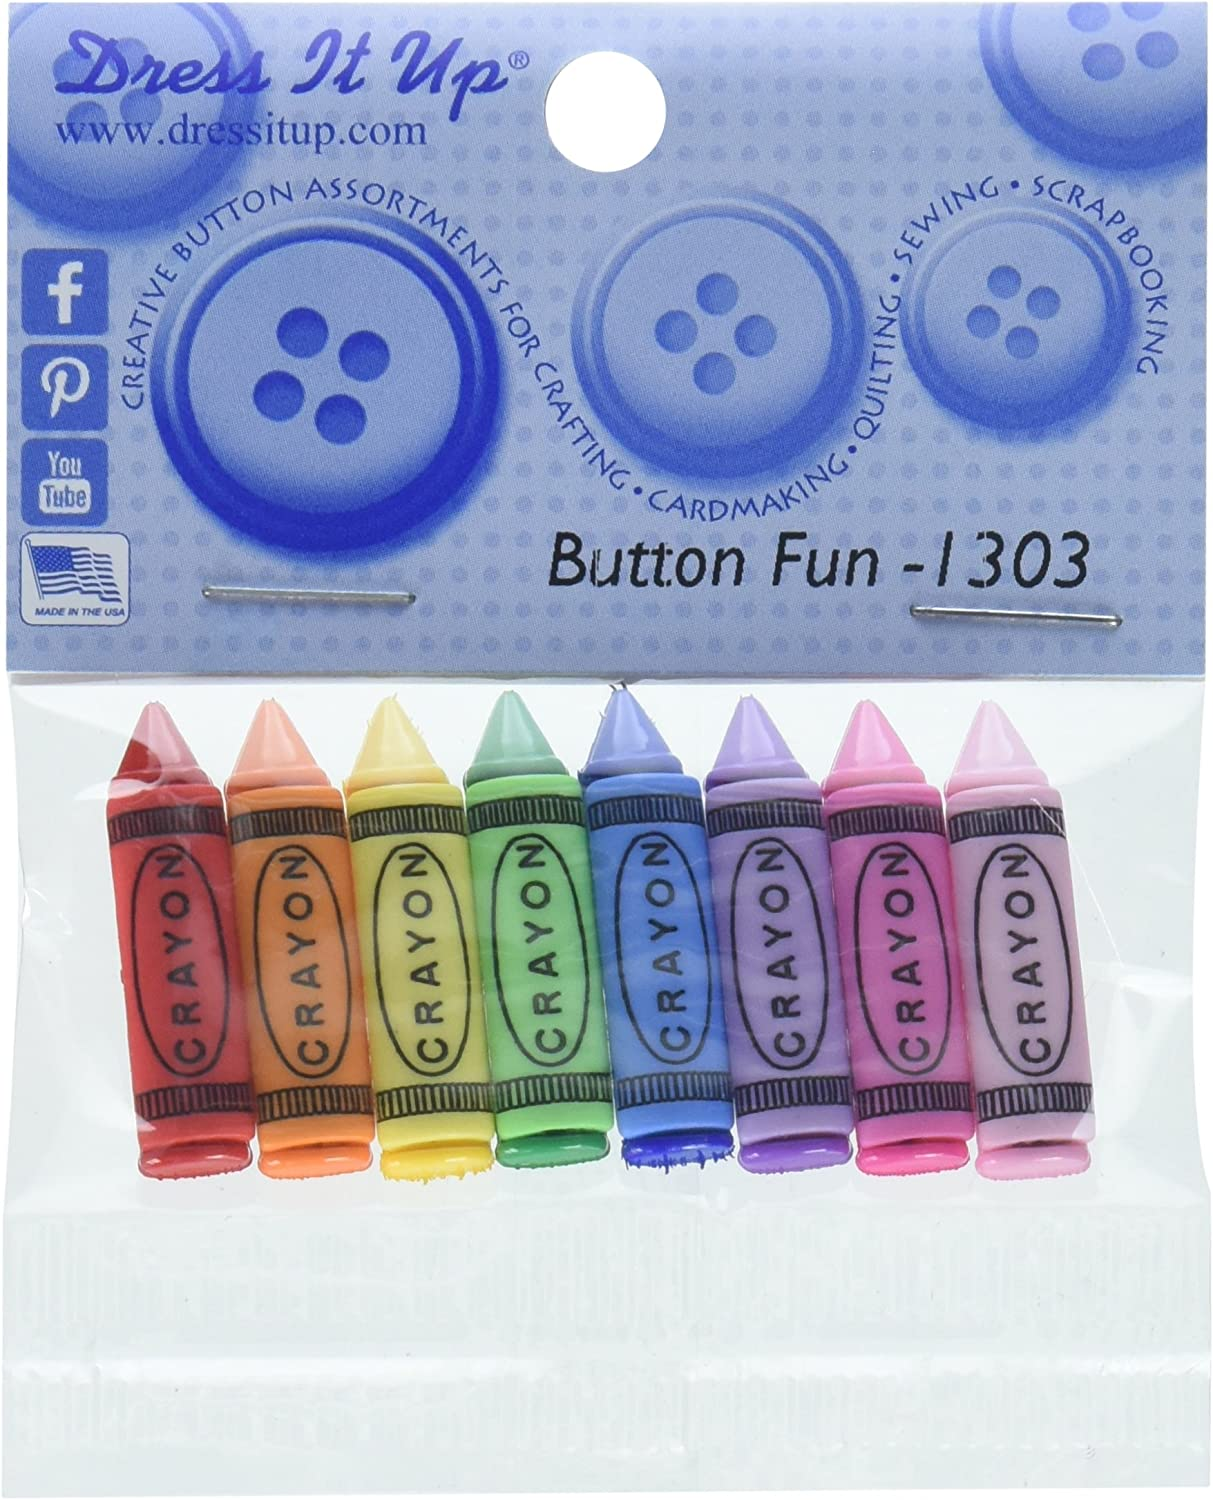 Jesse James Dress It Up Buttons School Collection #1303 Bf-Crayons 1303-1P 1-Pack